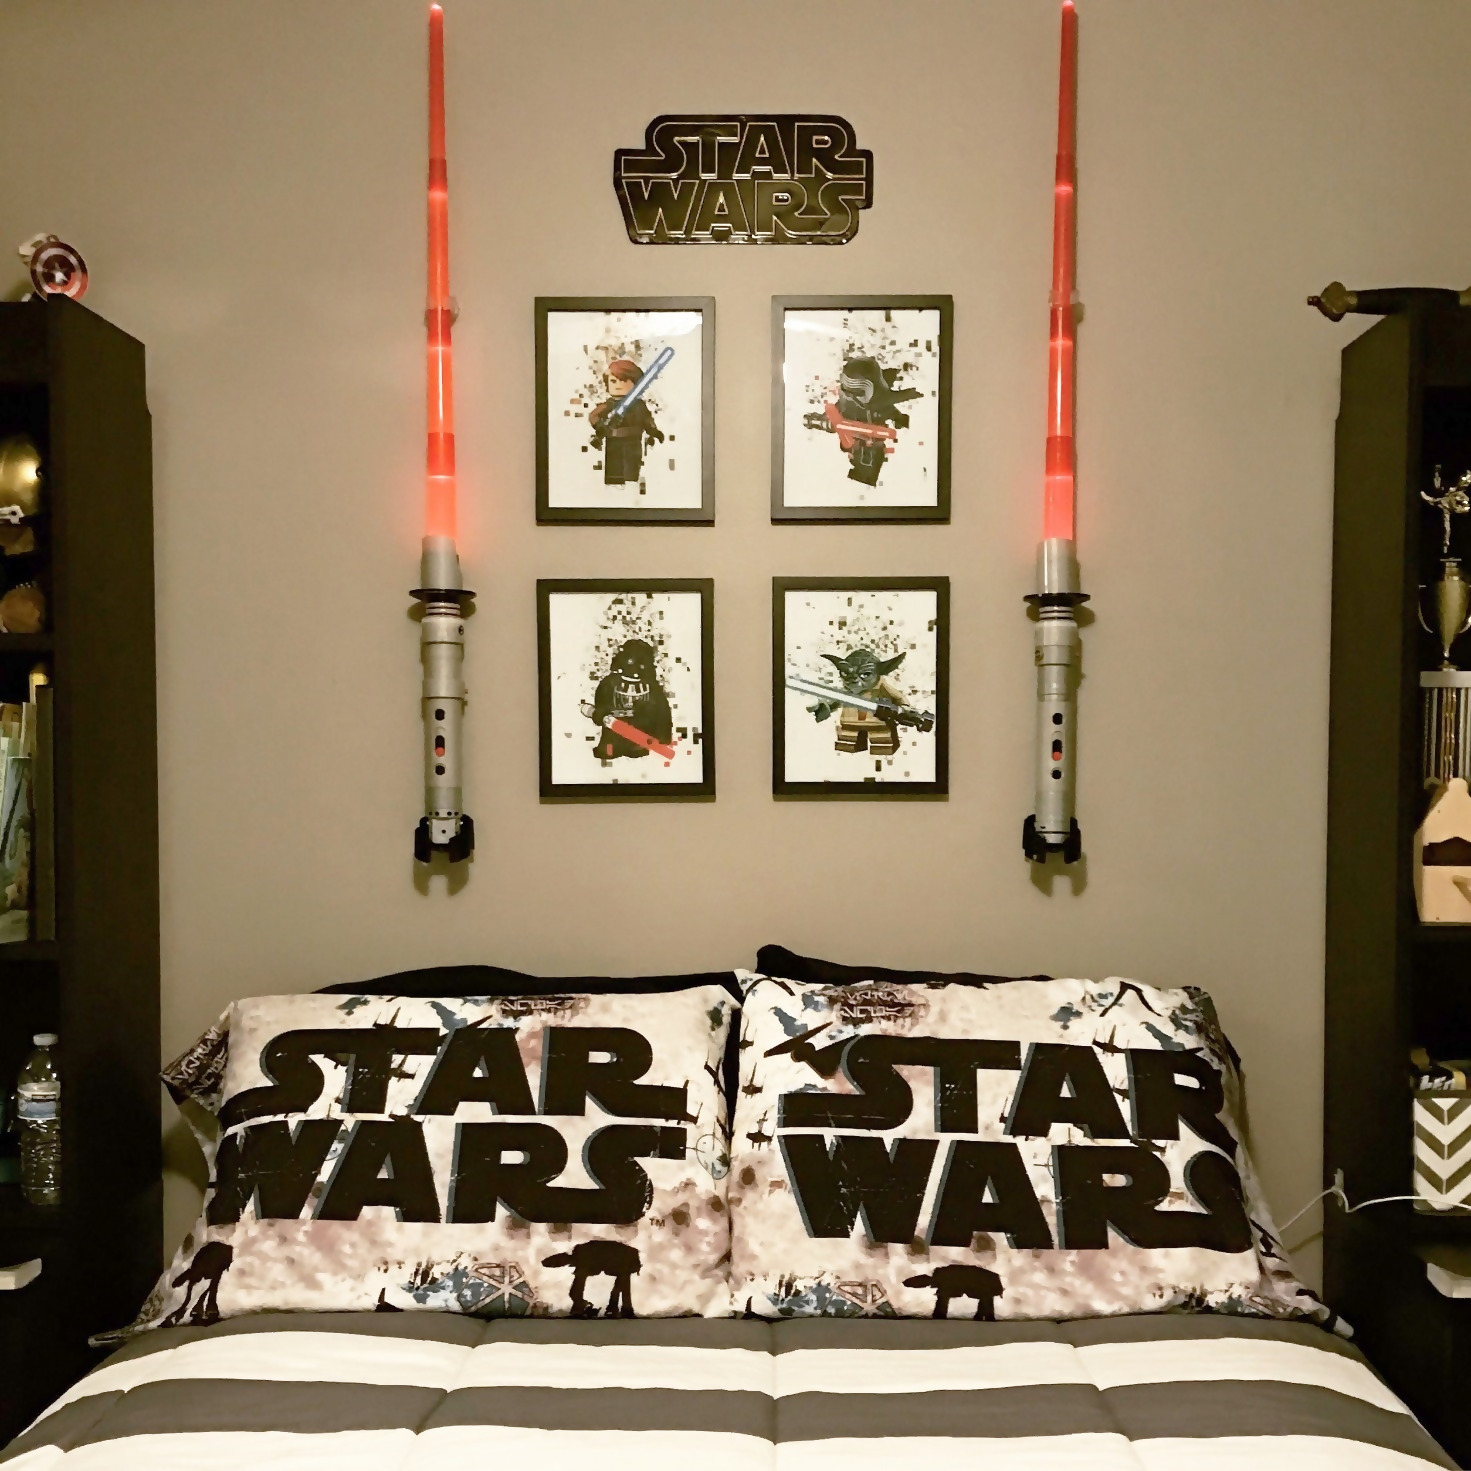 Cool Star Wars Bedroom Decor Ideas Star Wars Bedroom Star Wars Bedroom Decor Star Wars Room Decor